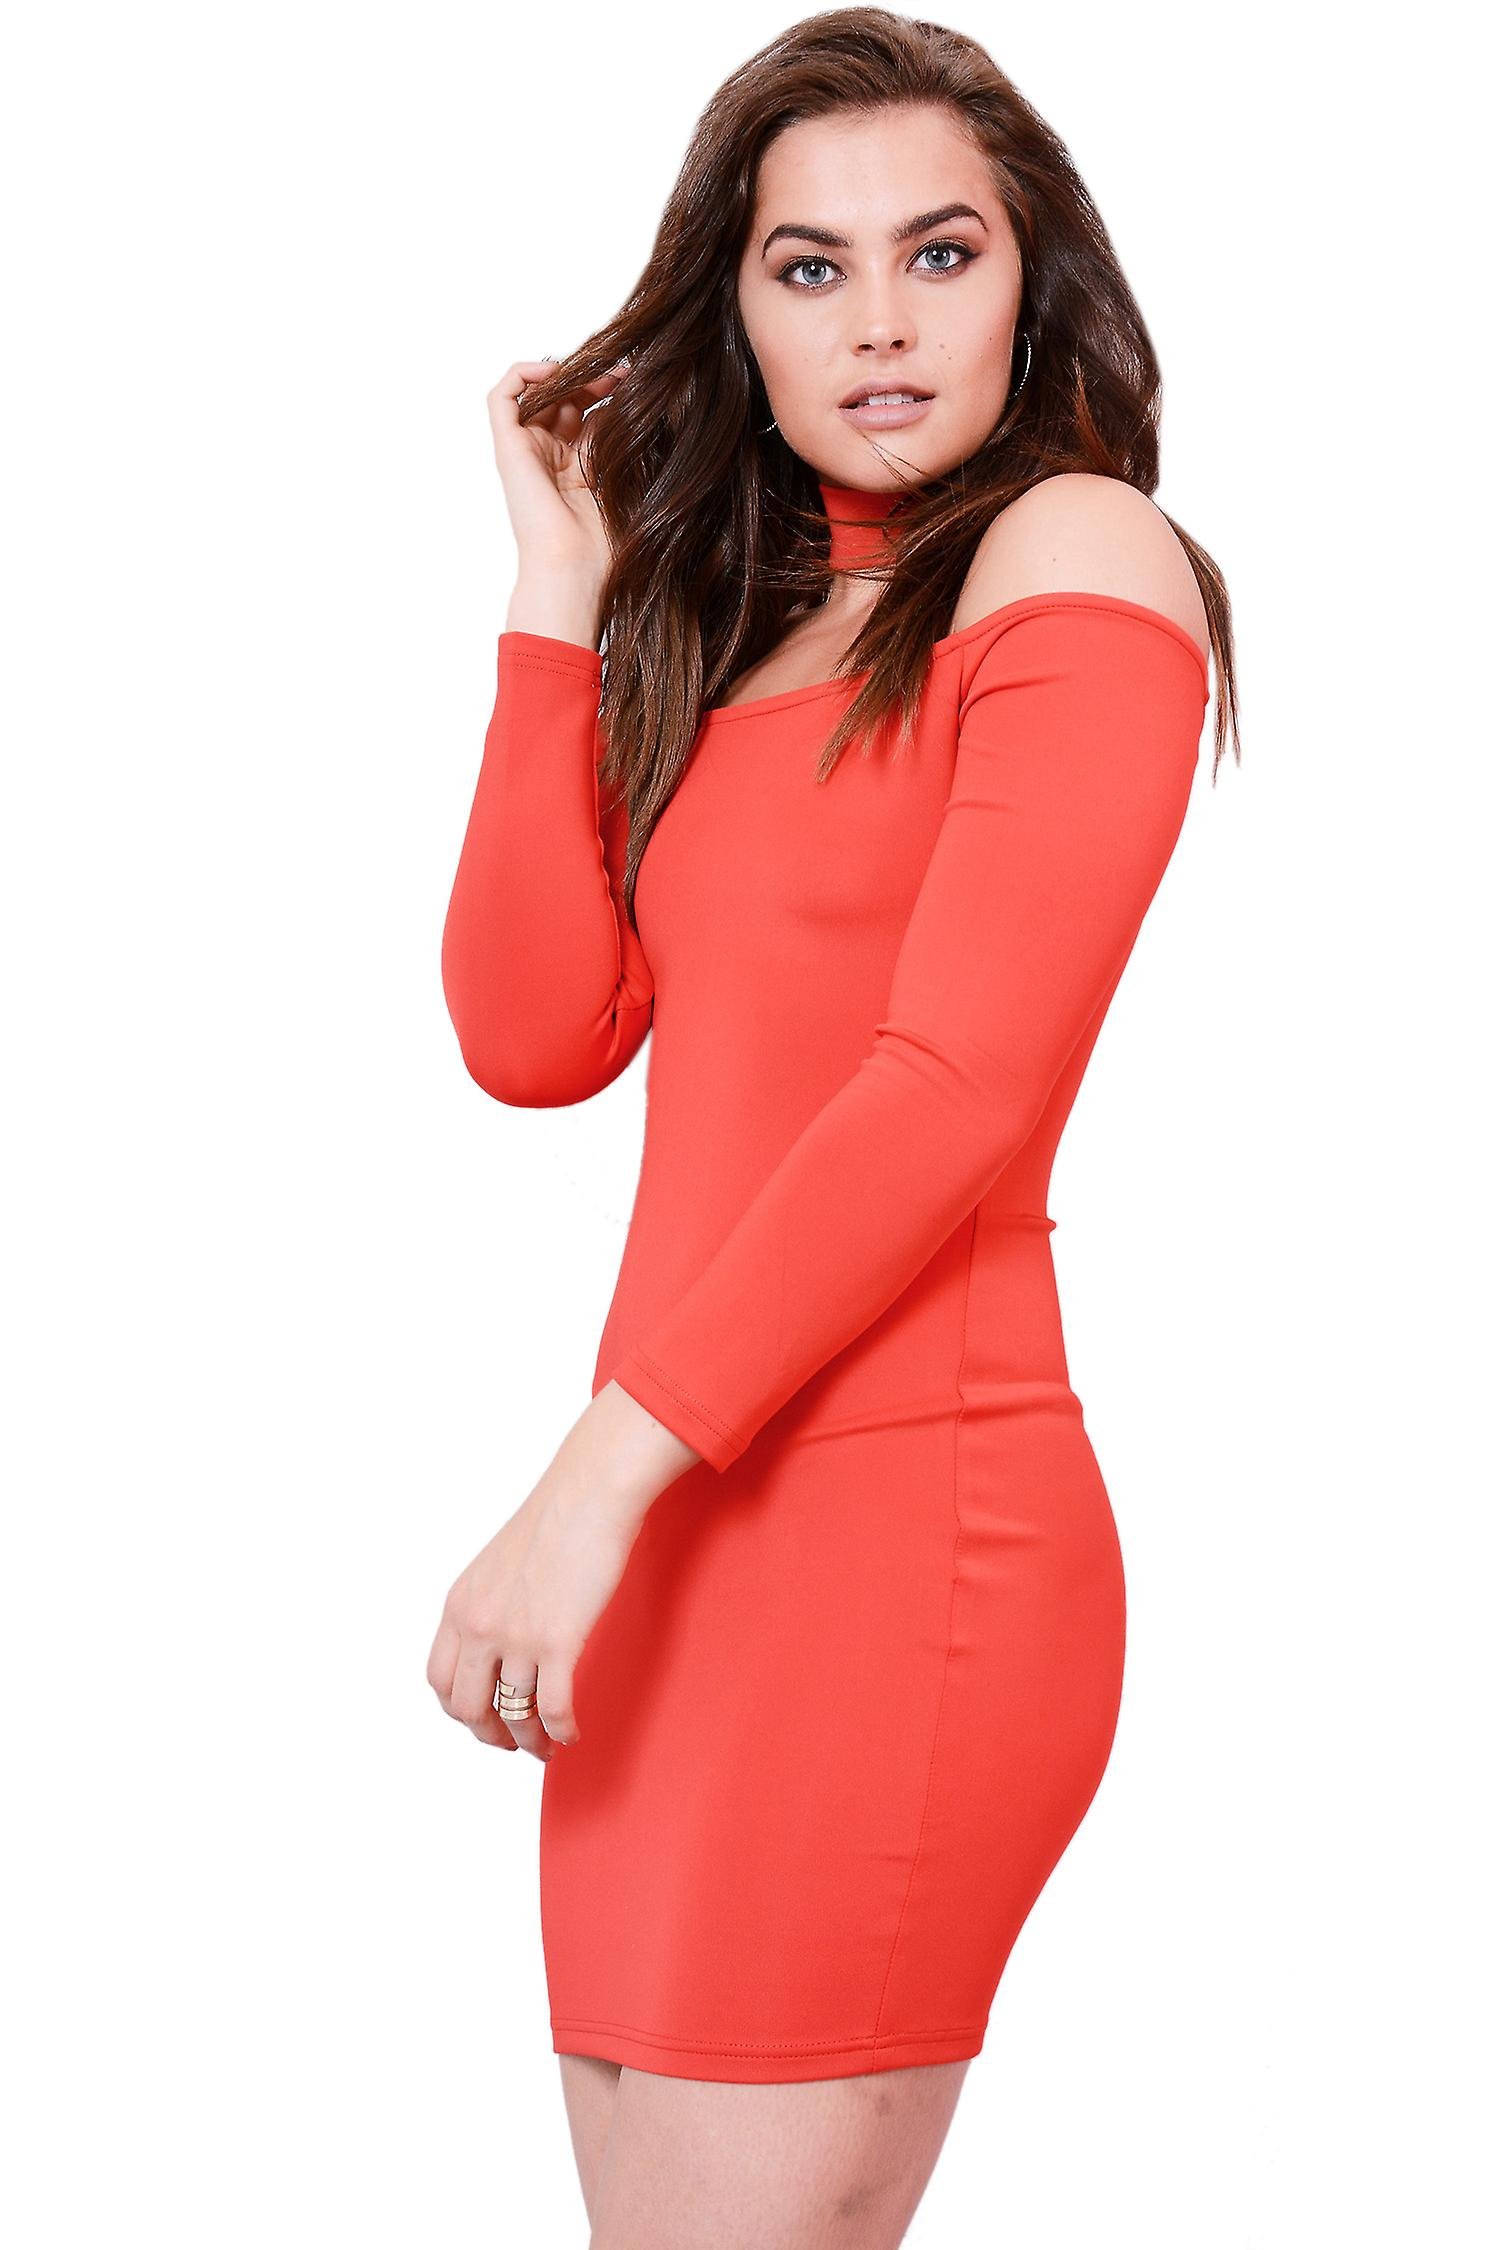 Lovemystyle Red Long Sleeve Bodycon Dress With Choker